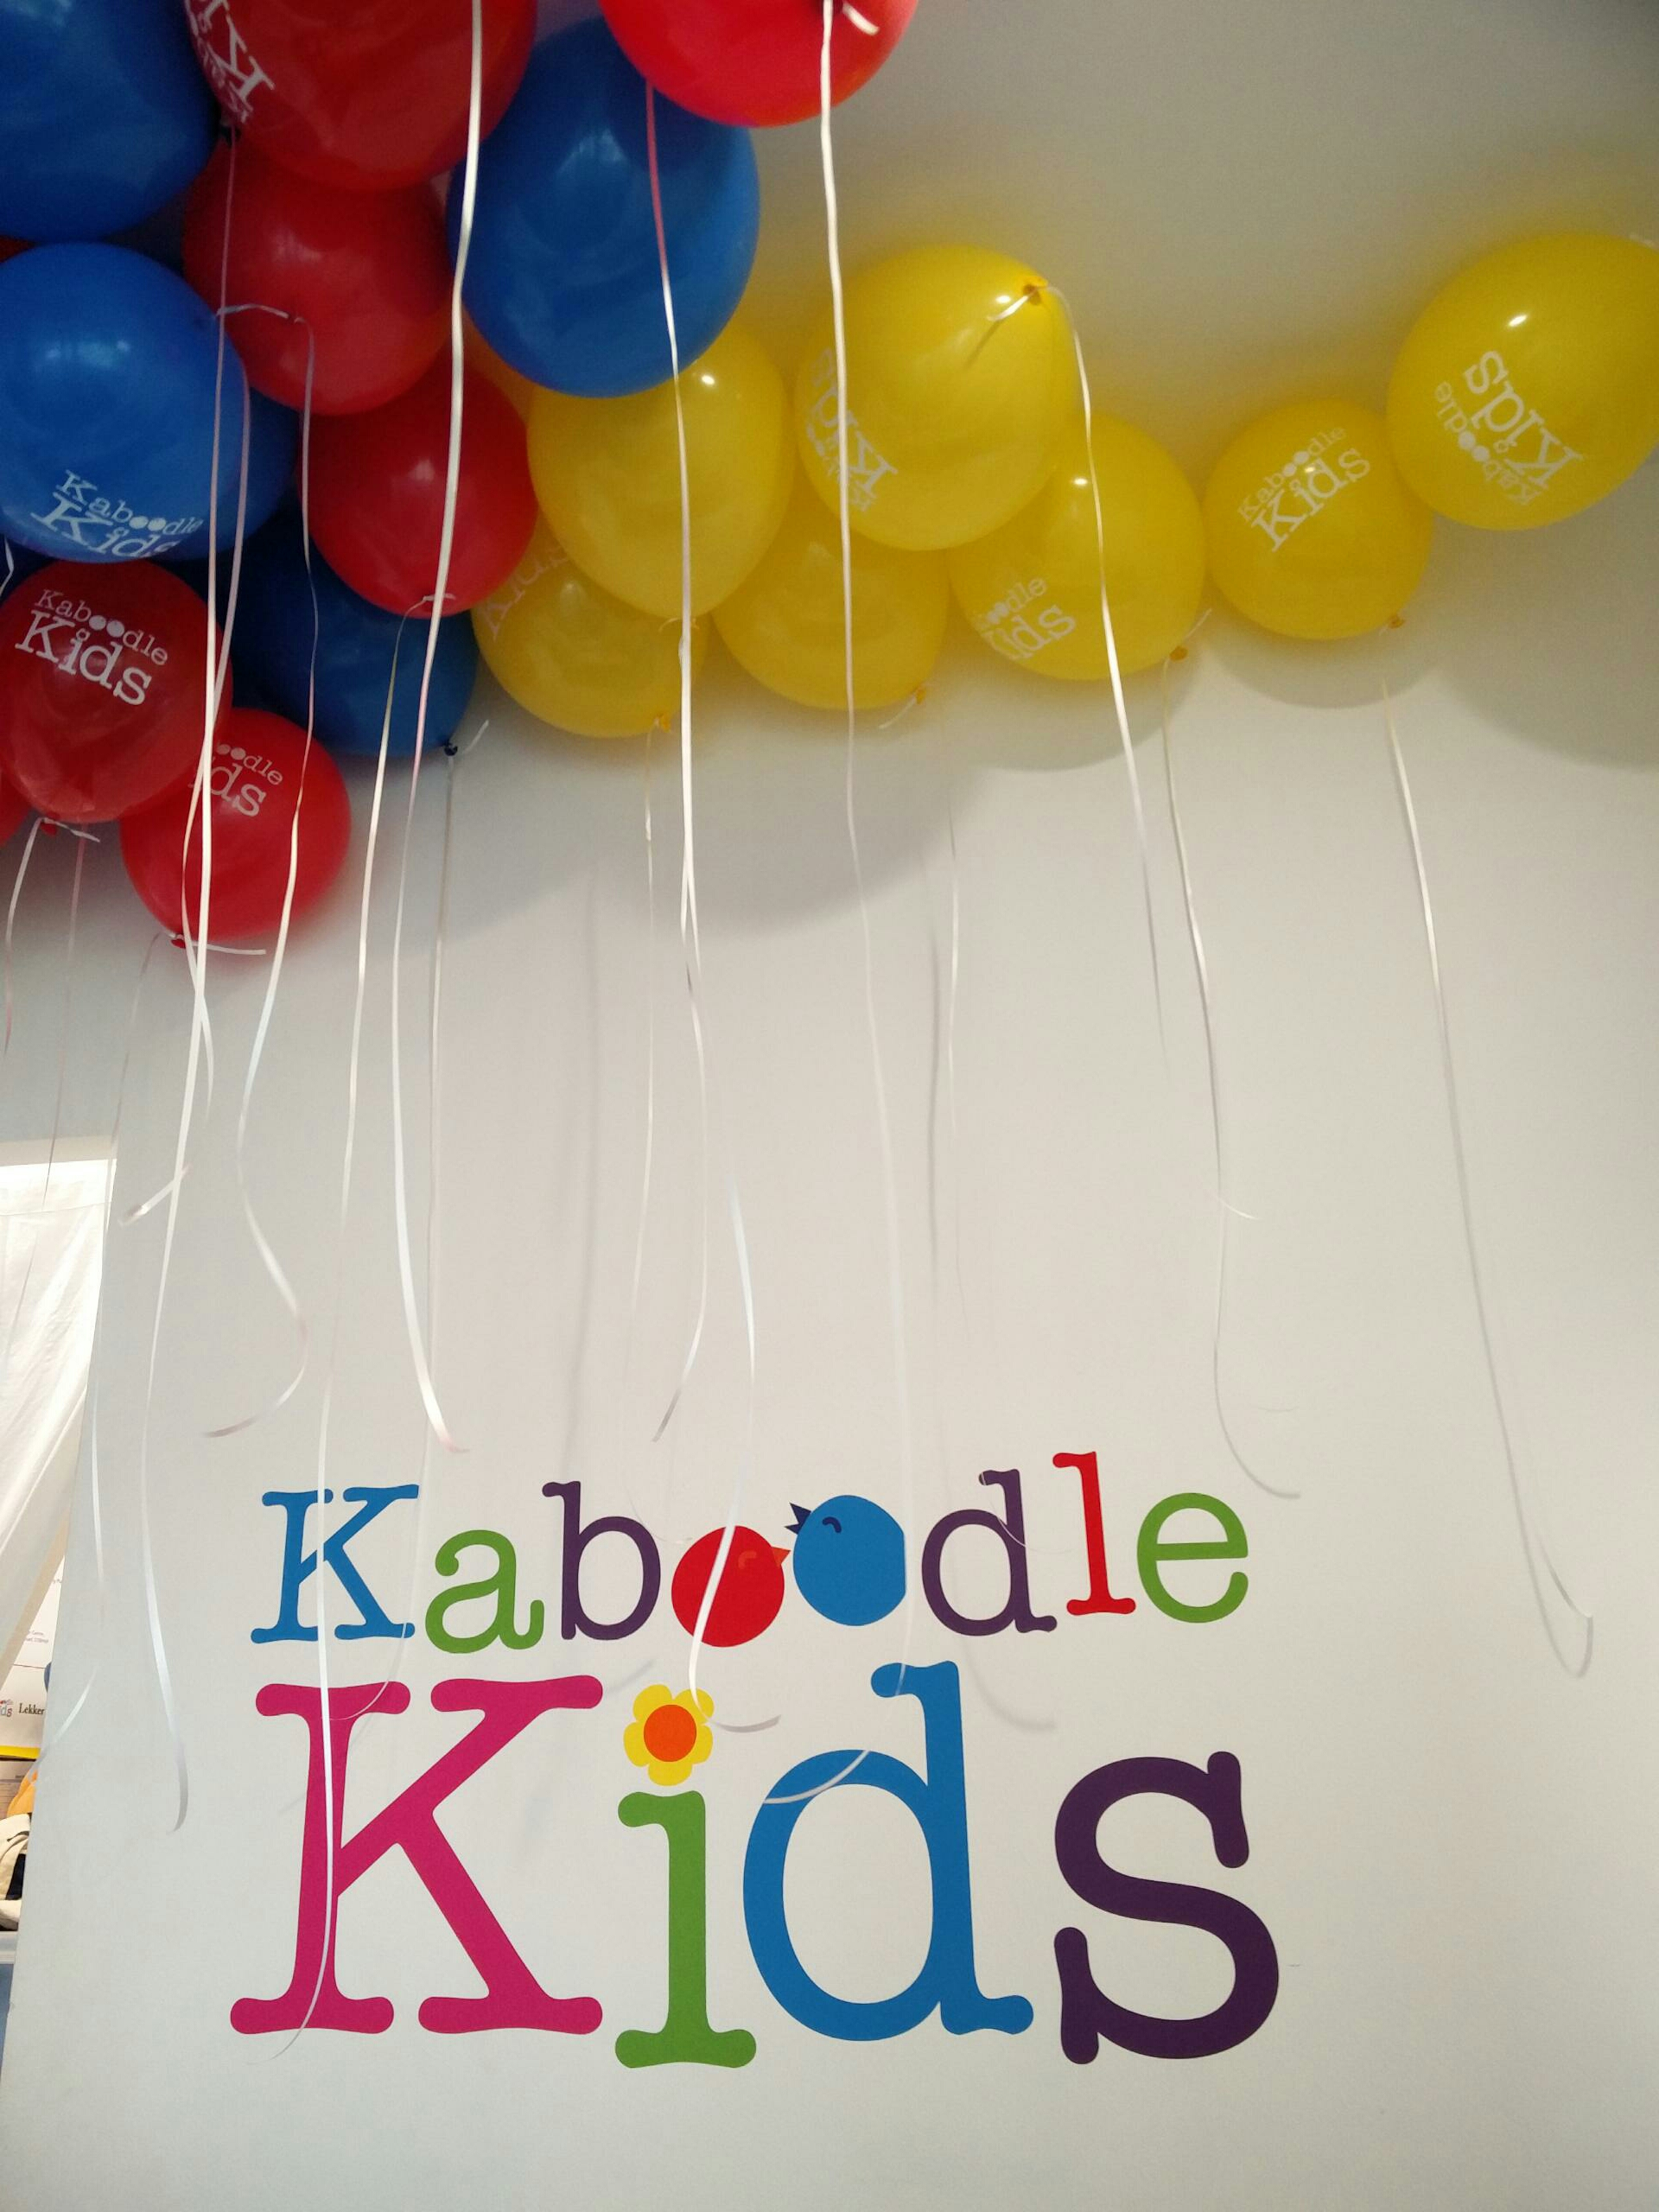 Kaboodle Kids Singapore indoor playground